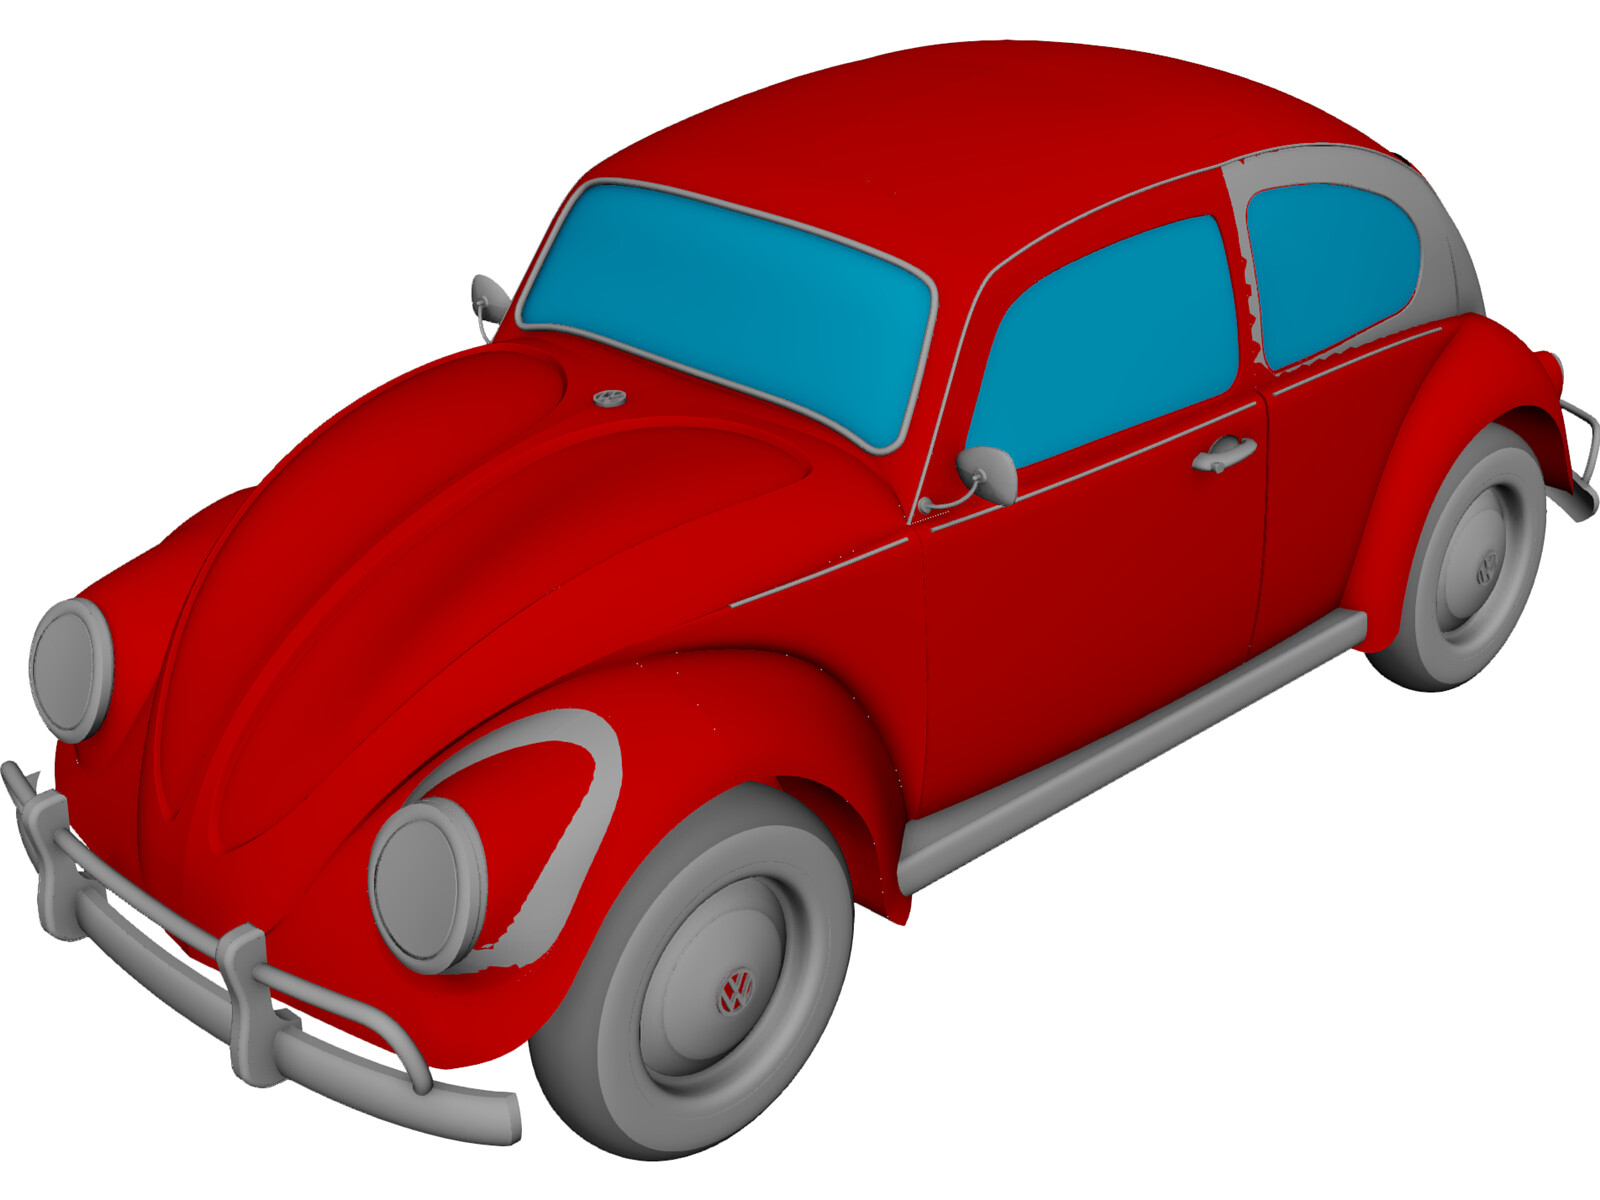 Volkswagen Beetle 3D CAD Model